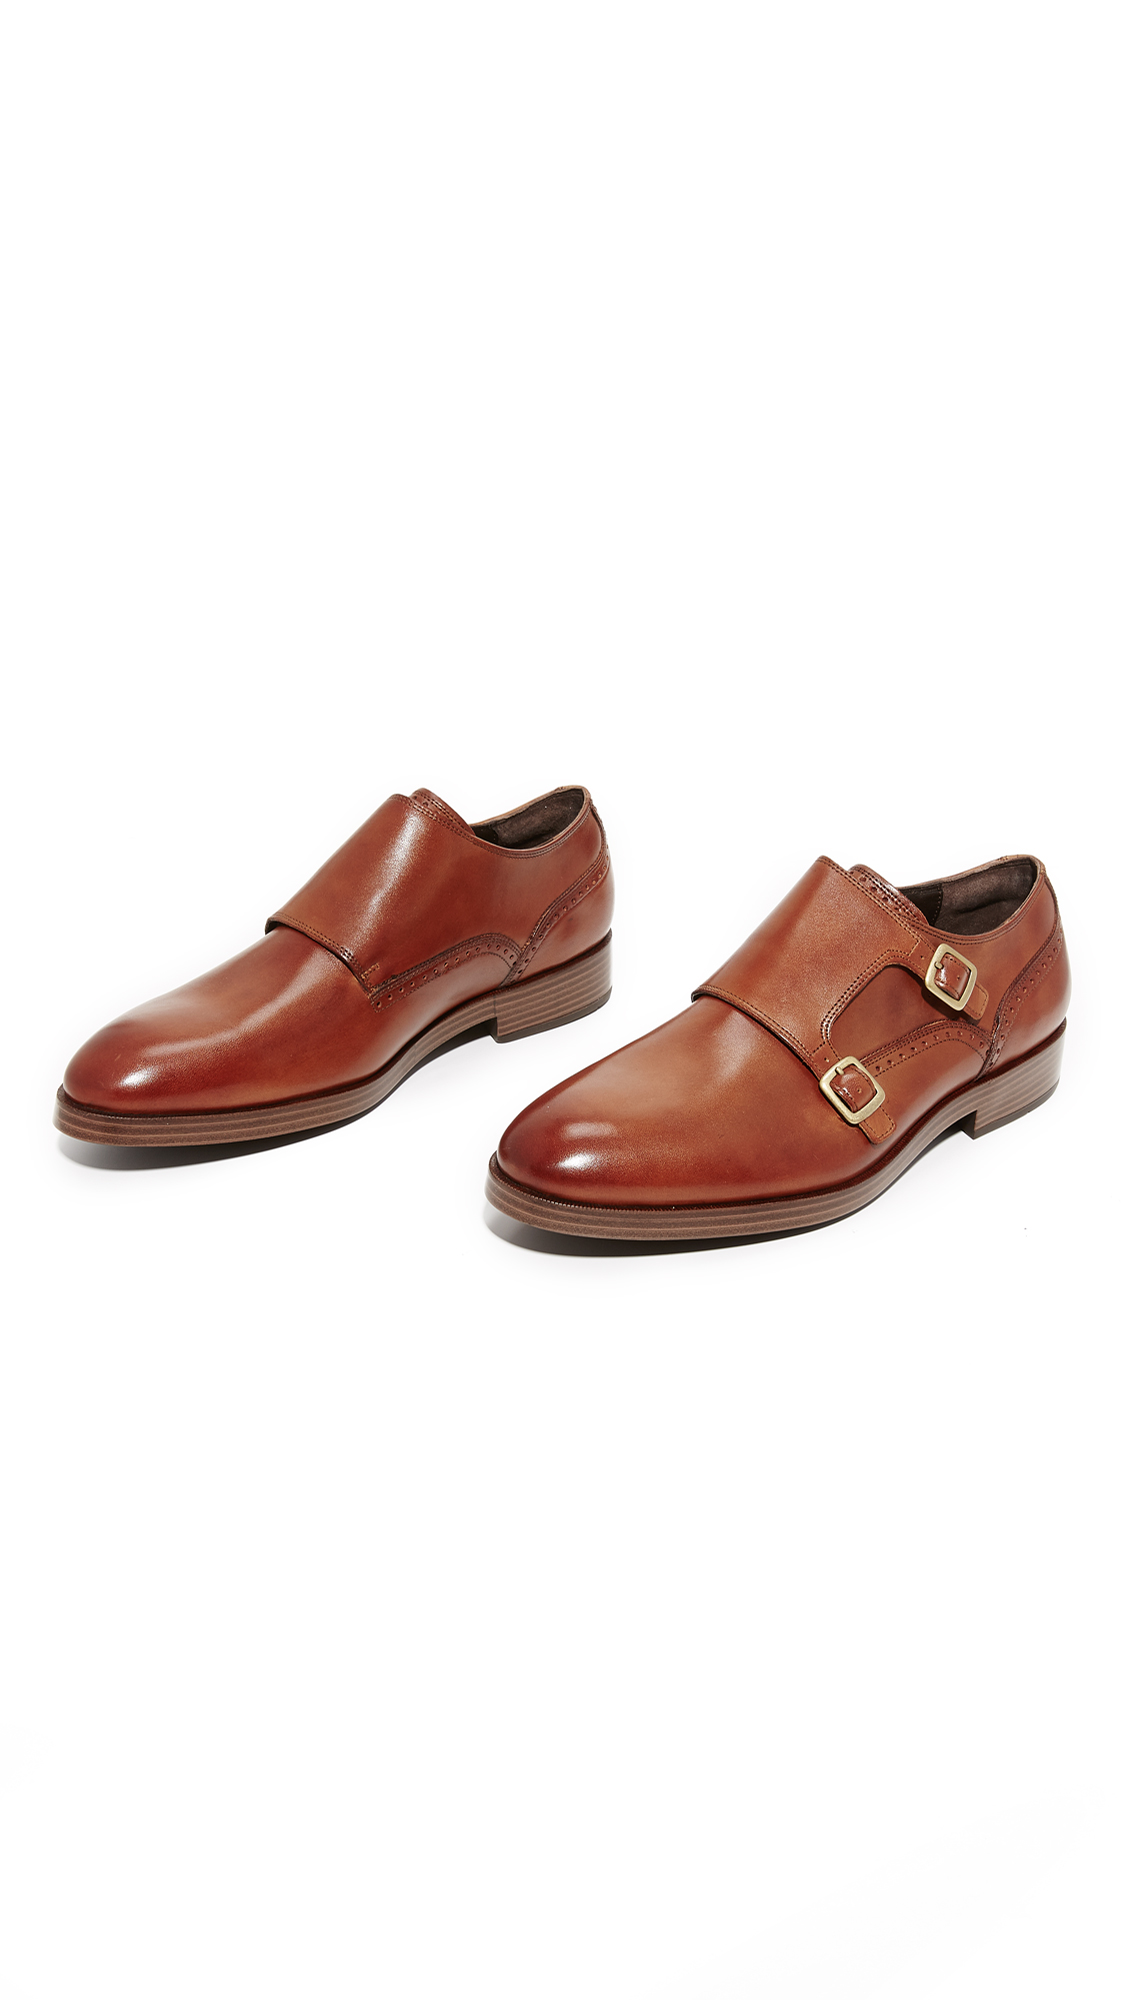 Cole Haan Harrison Grand Double Monk Straps | EAST DANE Use Code EDNC18 for  15% Off